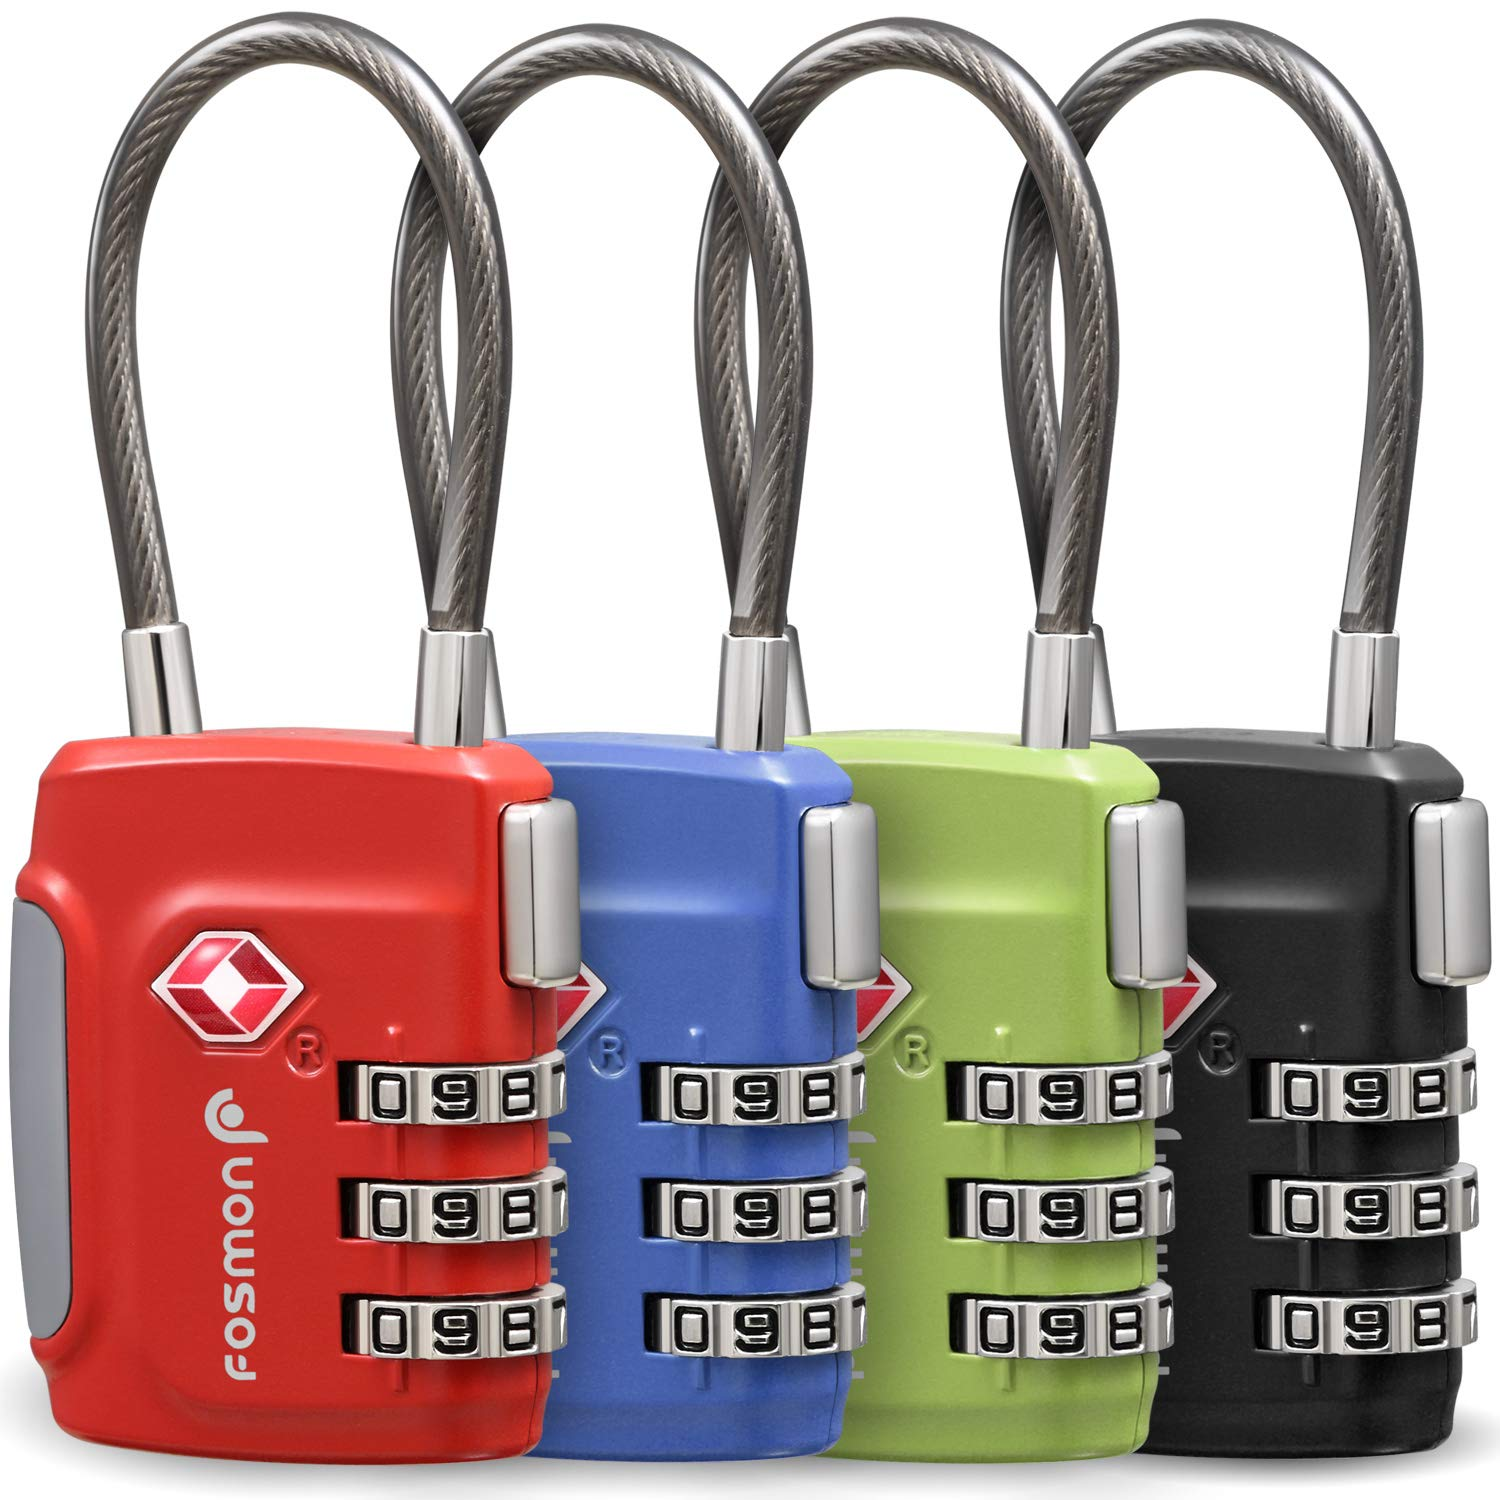 Fosmon TSA Approved Cable Luggage Locks, (4Pack) Re-settable Easy to Read 3 Digit Combination with Alloy Body and Release Button for Travel Bag, Suit Case & Luggage - Black, Green, Red and Blue